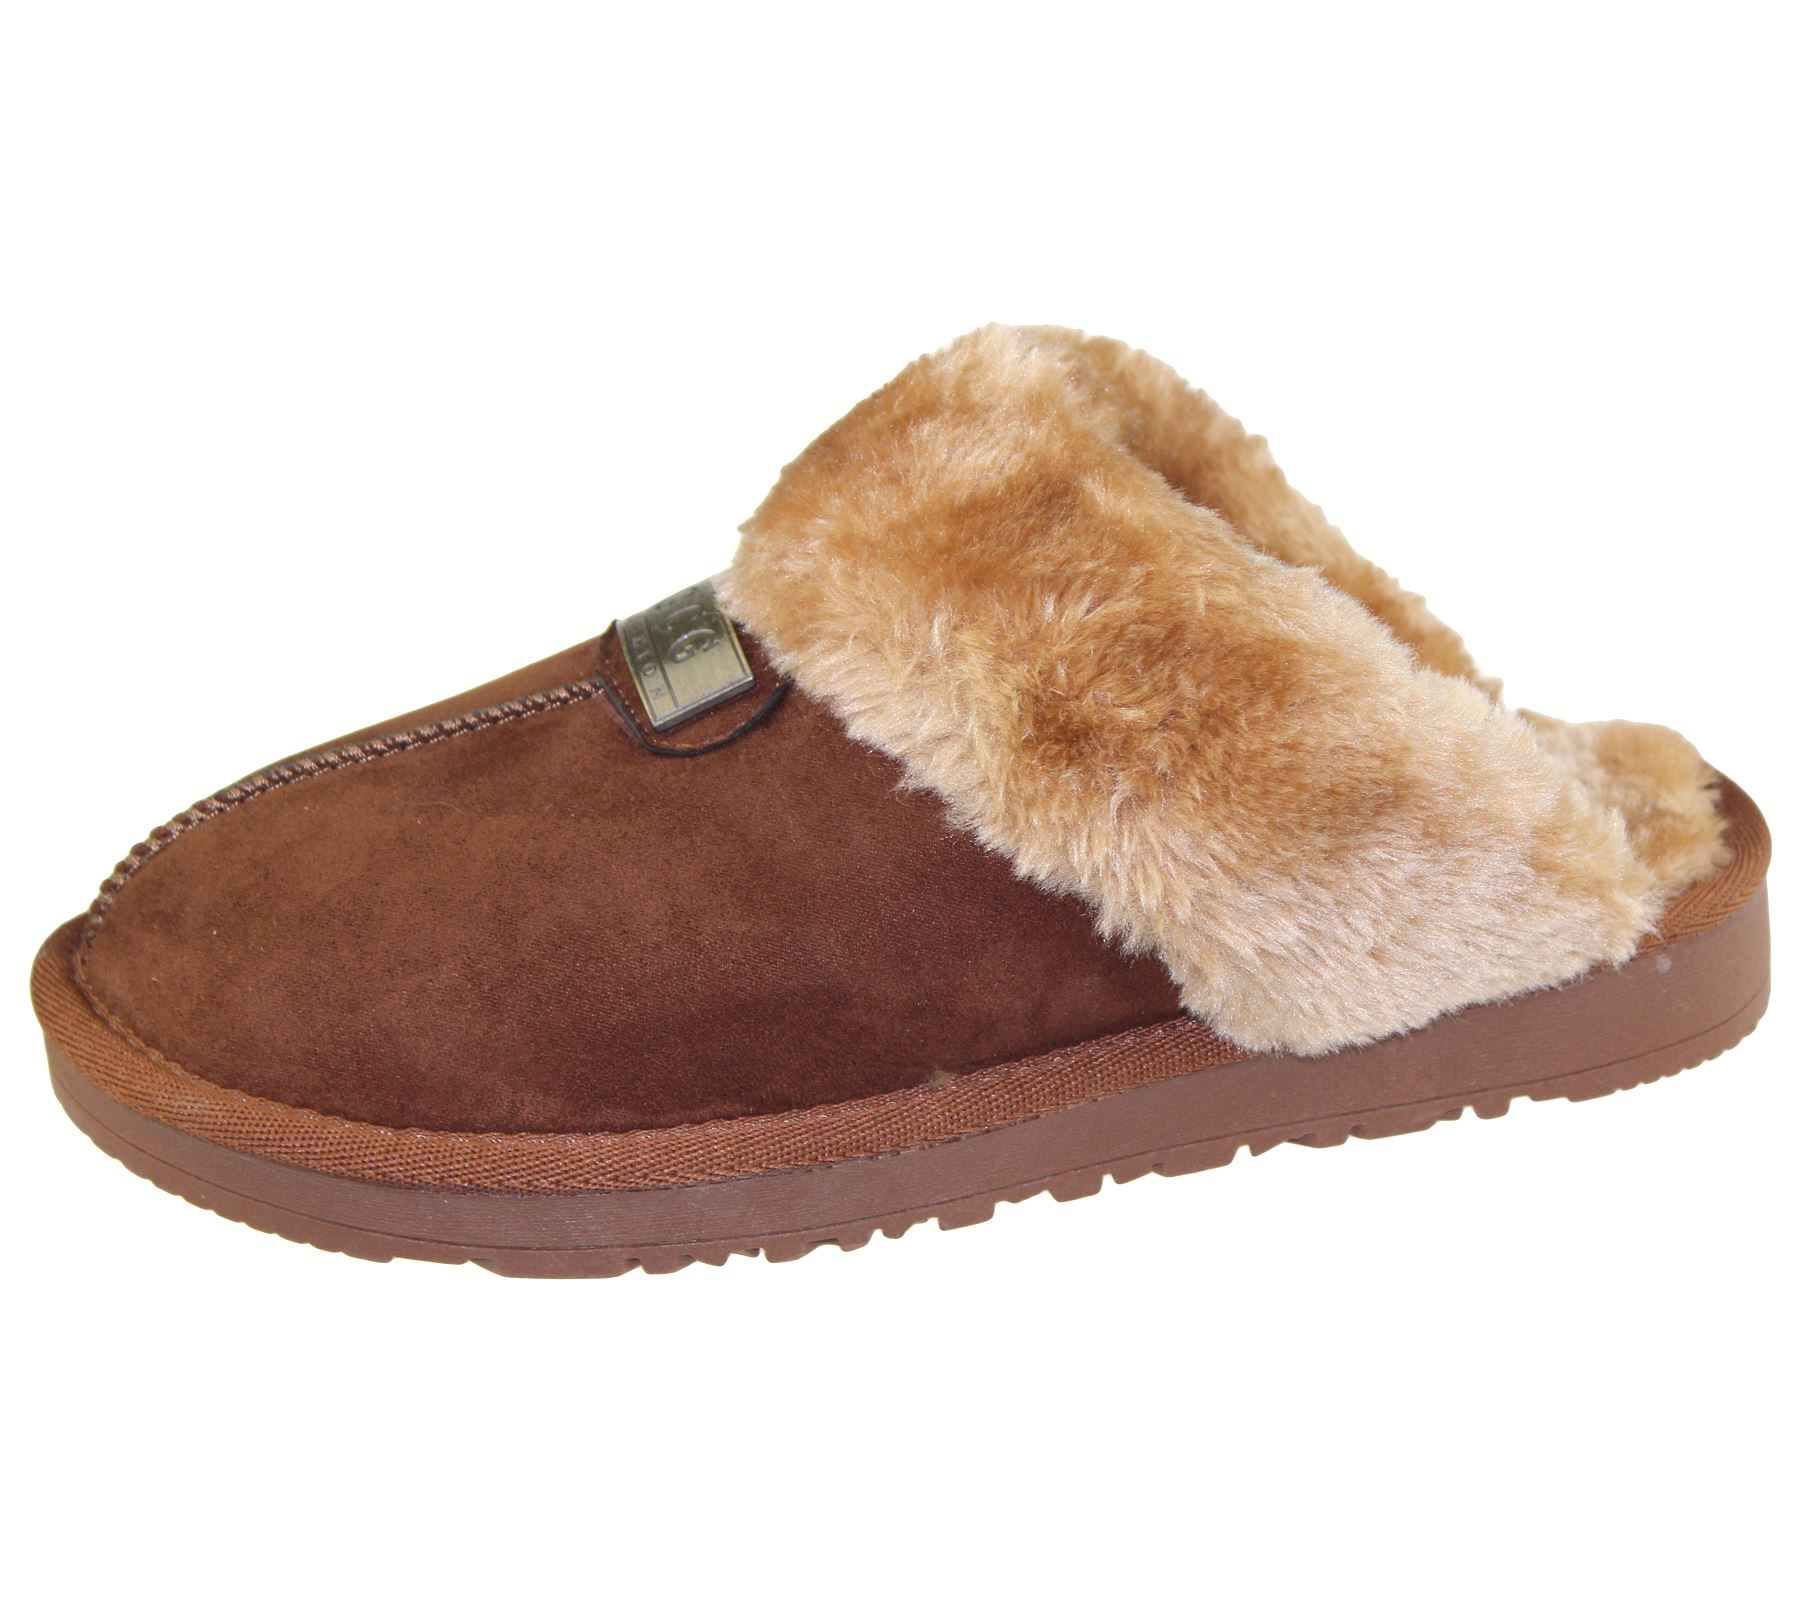 Womens-Fur-Lined-Slippers-Ladies-Mules-Non-Slip-Rubber-Sole-Shoes miniatura 15